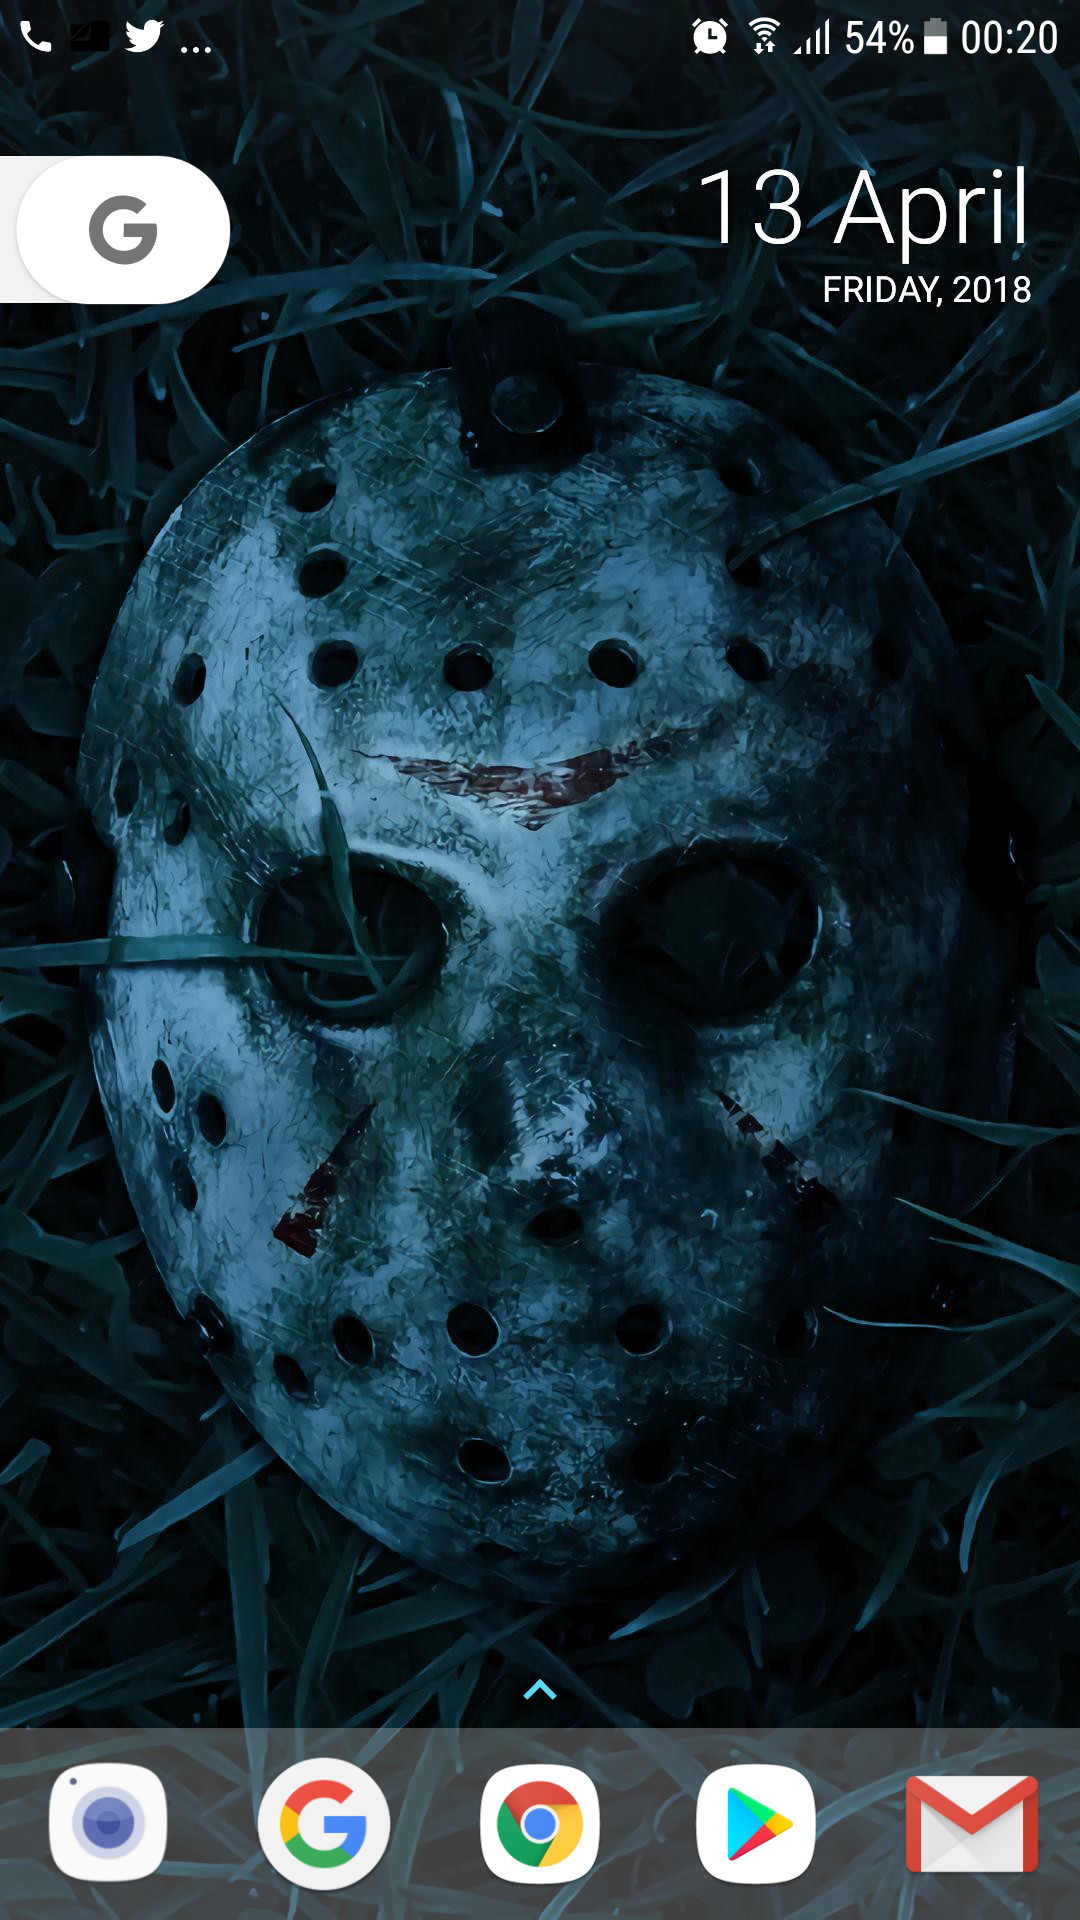 In The Spirit Of Friday 13th I Changed My Wallpaper